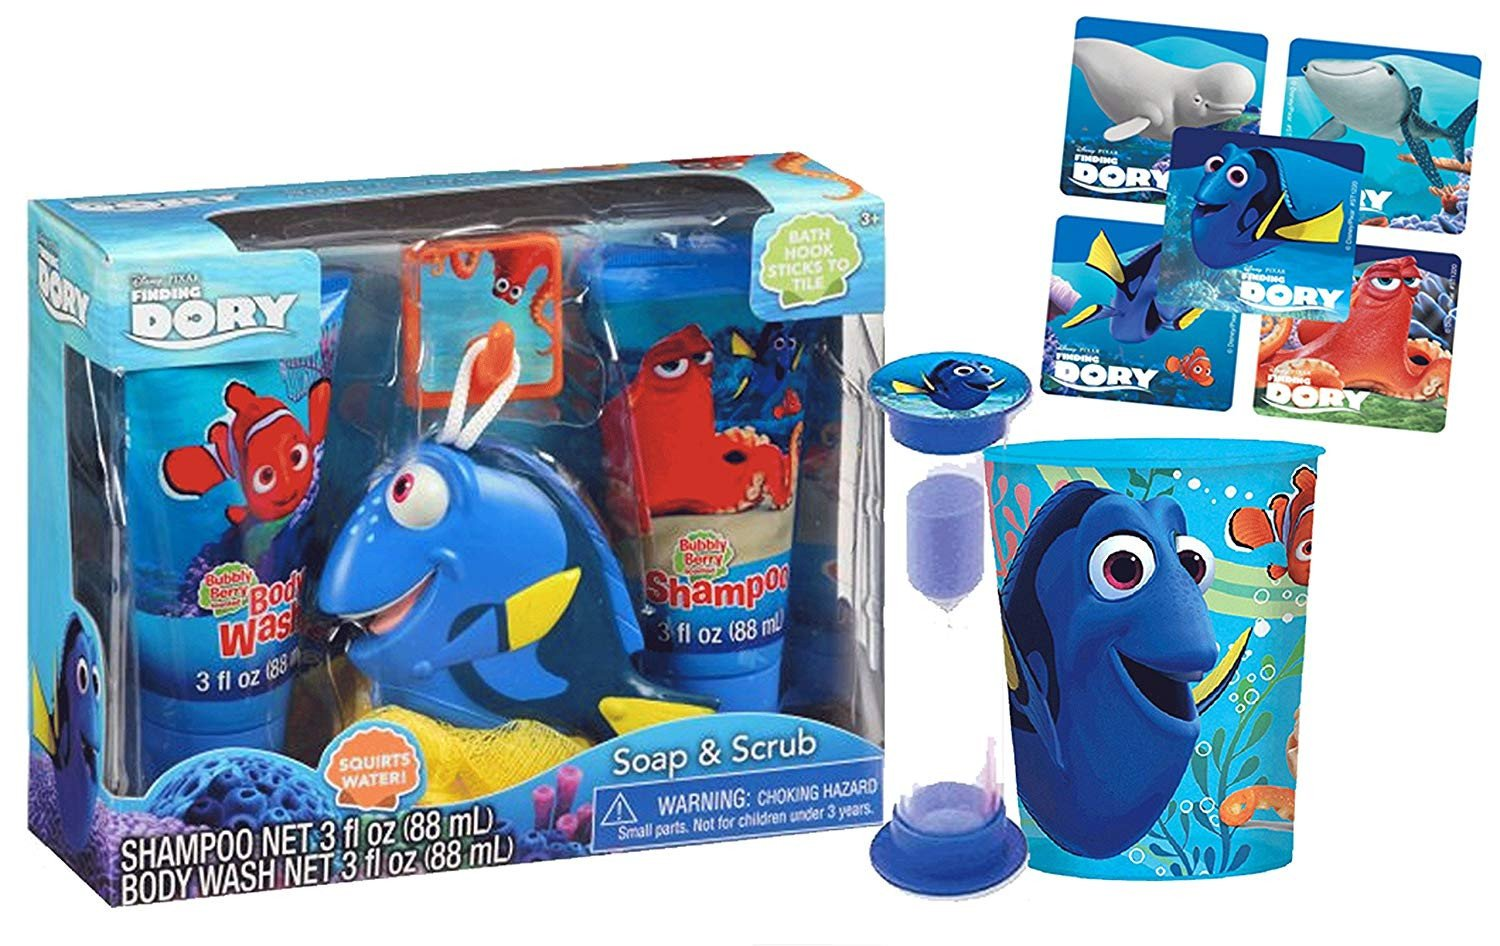 Finding Dory Bedroom Decor Elegant Gbg Beauty Disney Finding Dory 6pc Bath Time Wash Buddy Gift